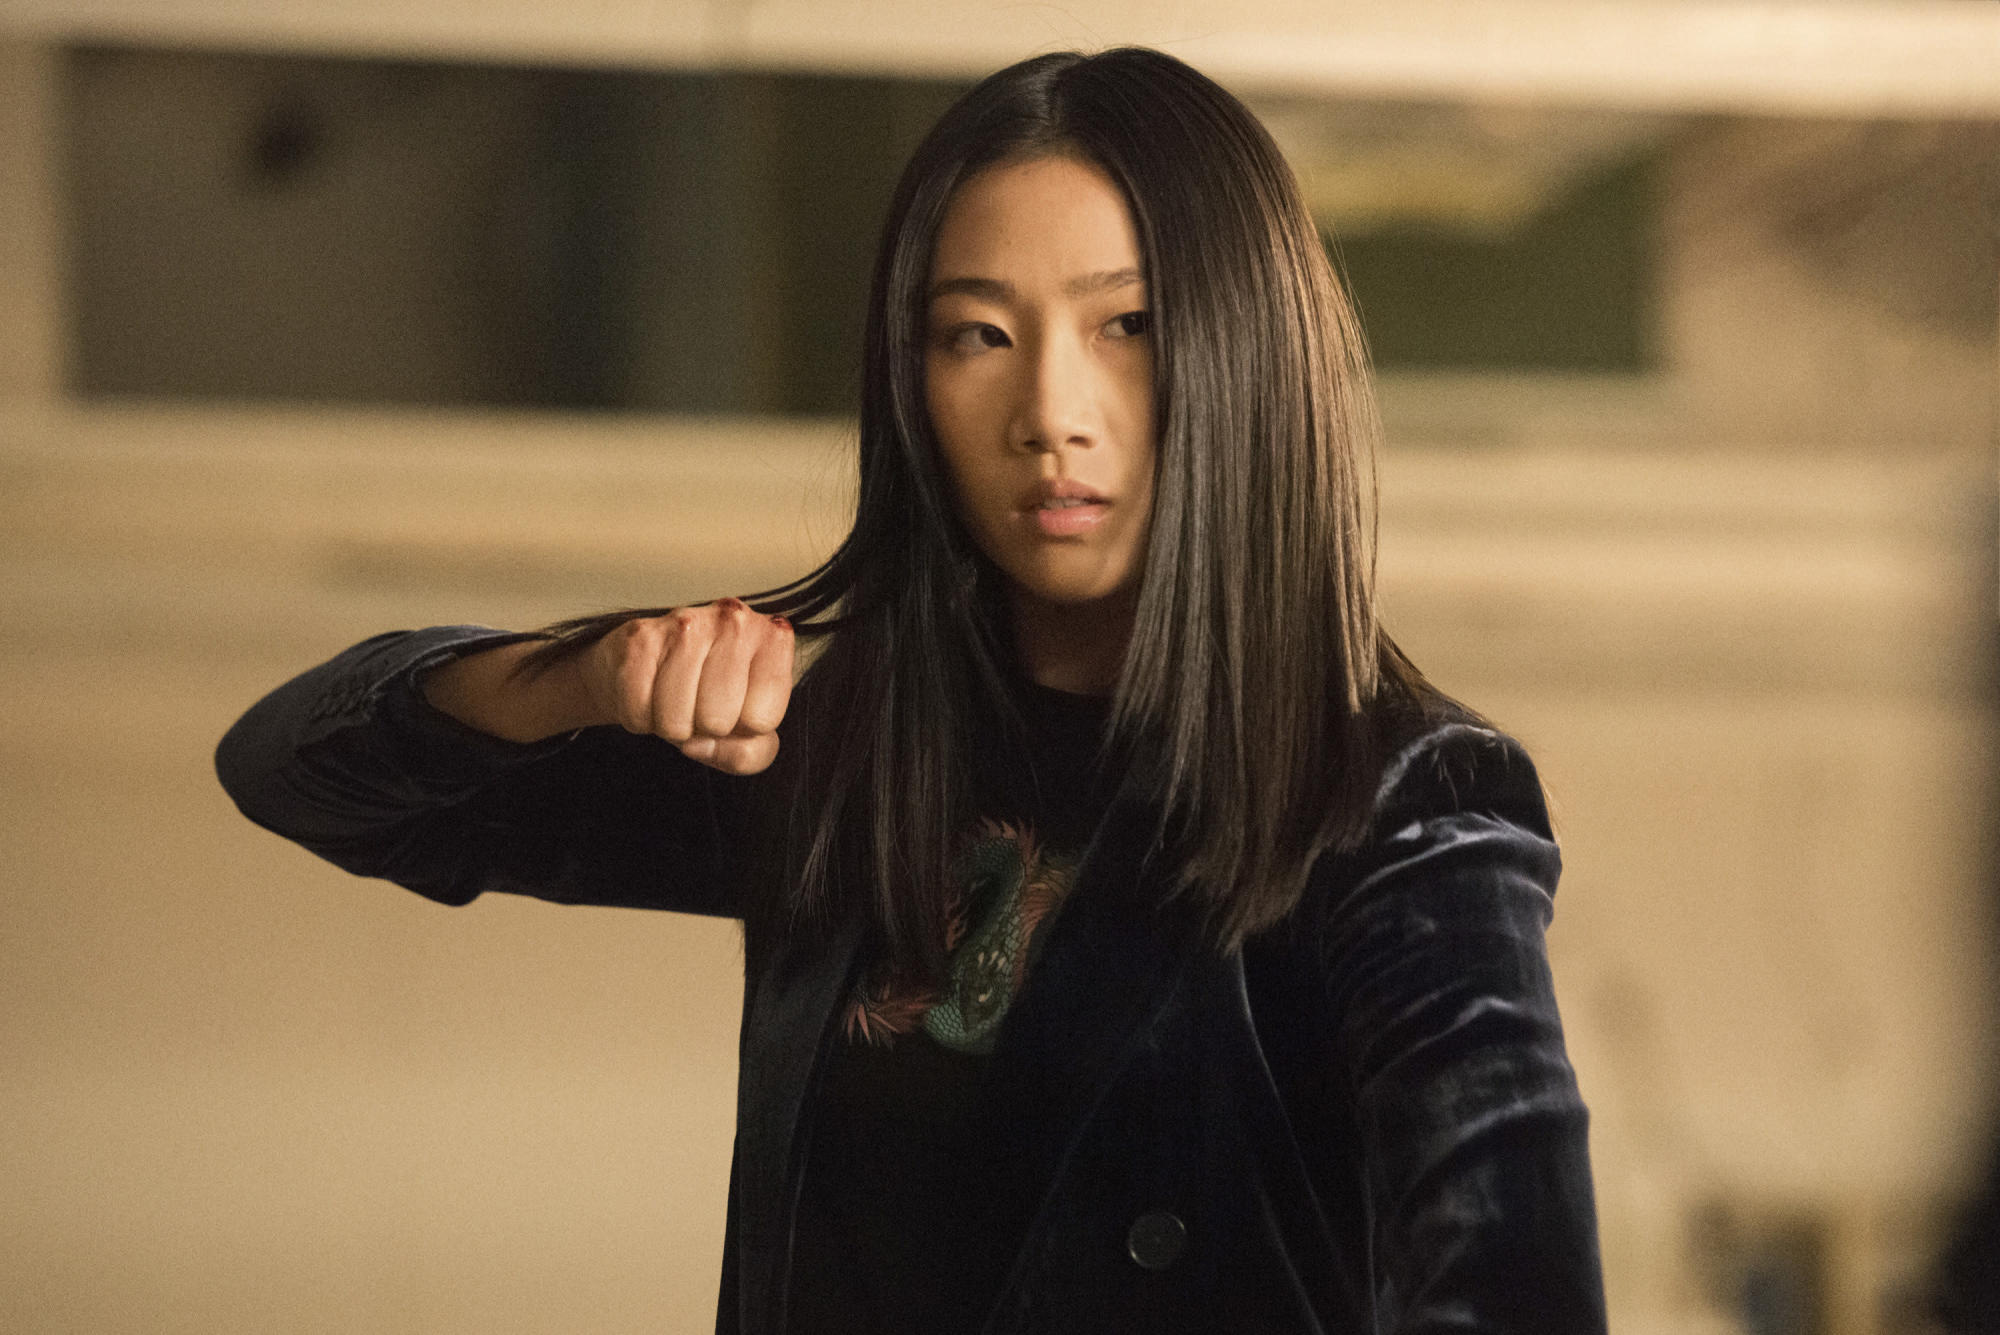 uk.sports.yahoo.com: A new 'Kung Fu' debuts at a crucial time for Asian Americans